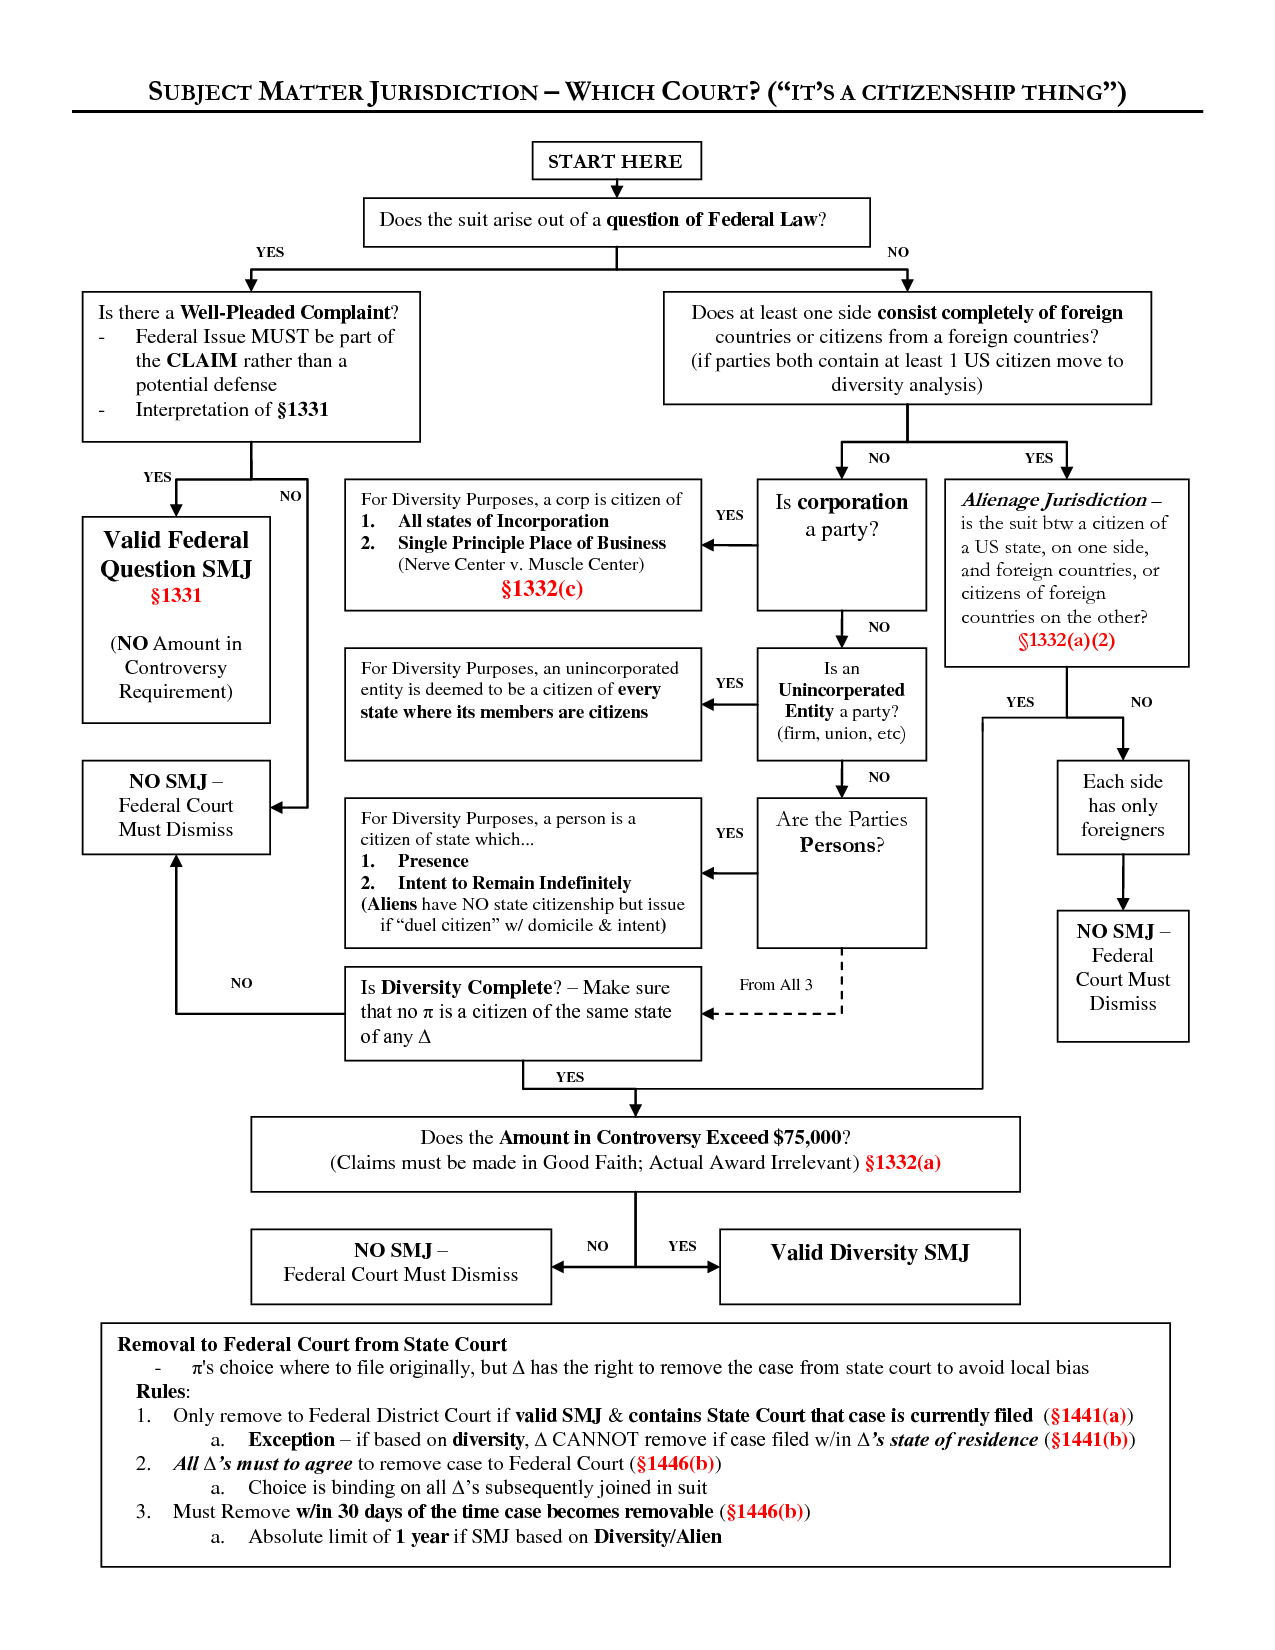 Subject matter jurisdiction flow chart flowcharts pinterest subject matter jurisdiction flow chart nvjuhfo Gallery